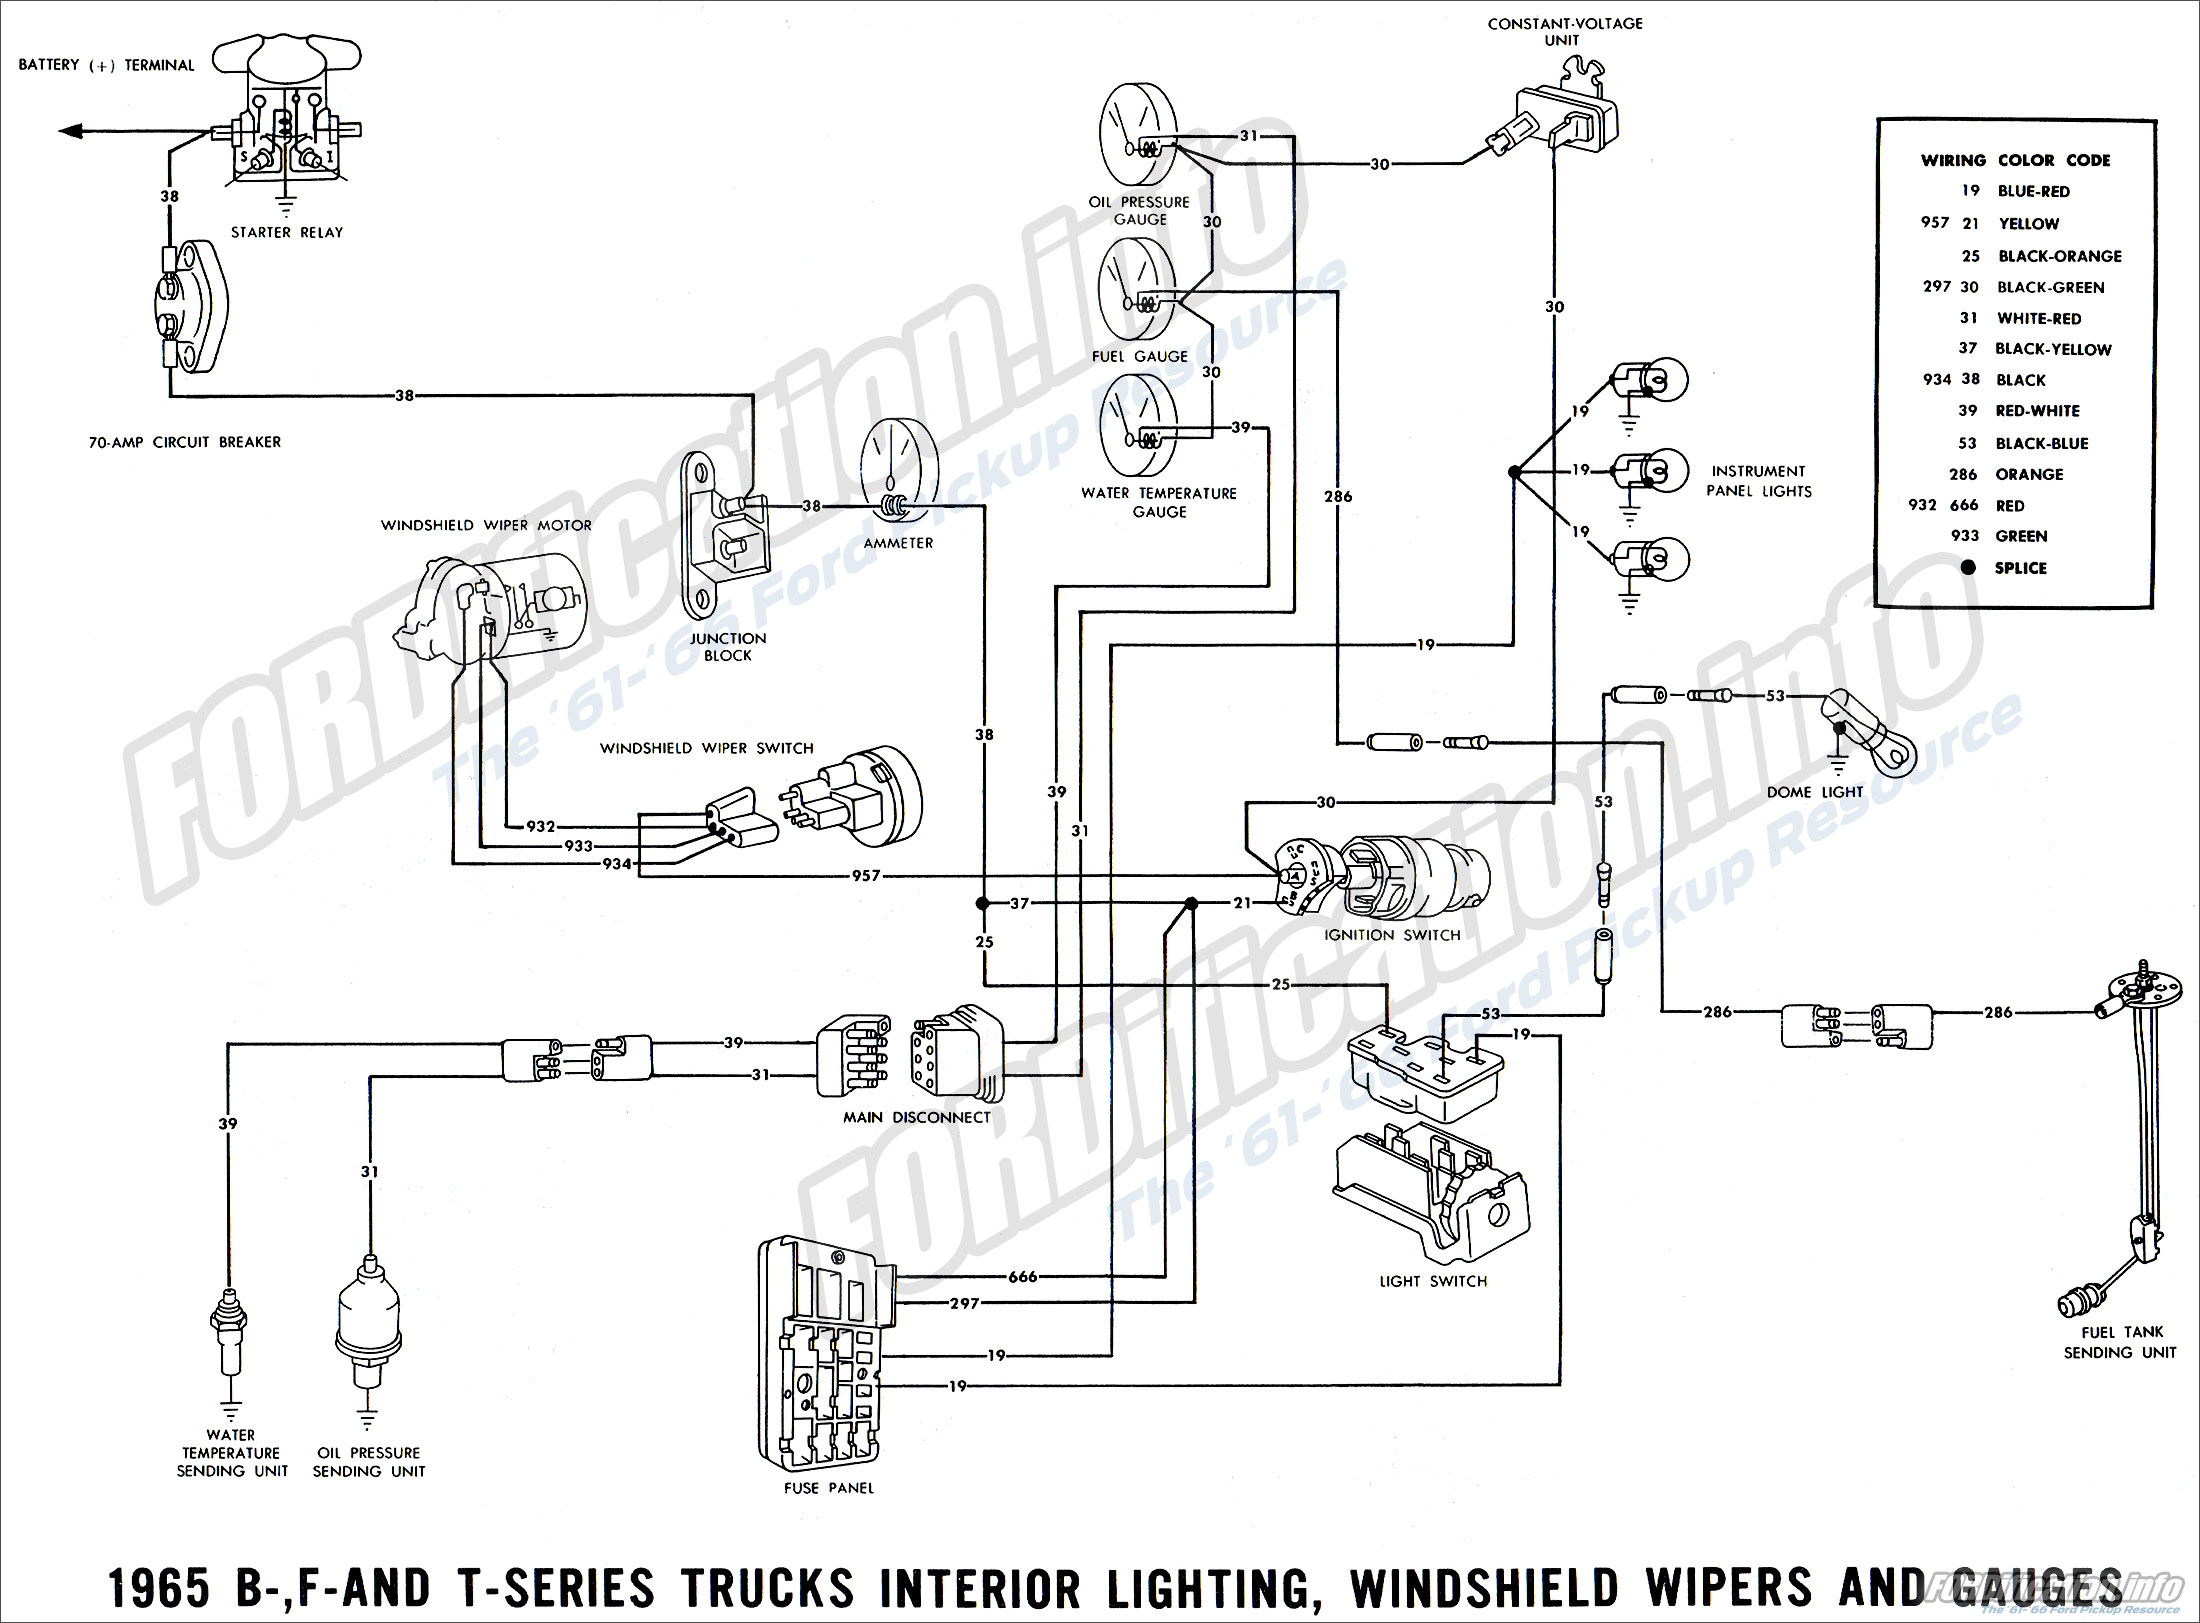 Ford F1 Wiring Diagram Schematic 2019 1949 1965 Truck Diagrams Fordification Info The 61 66 Rh 1938 1952